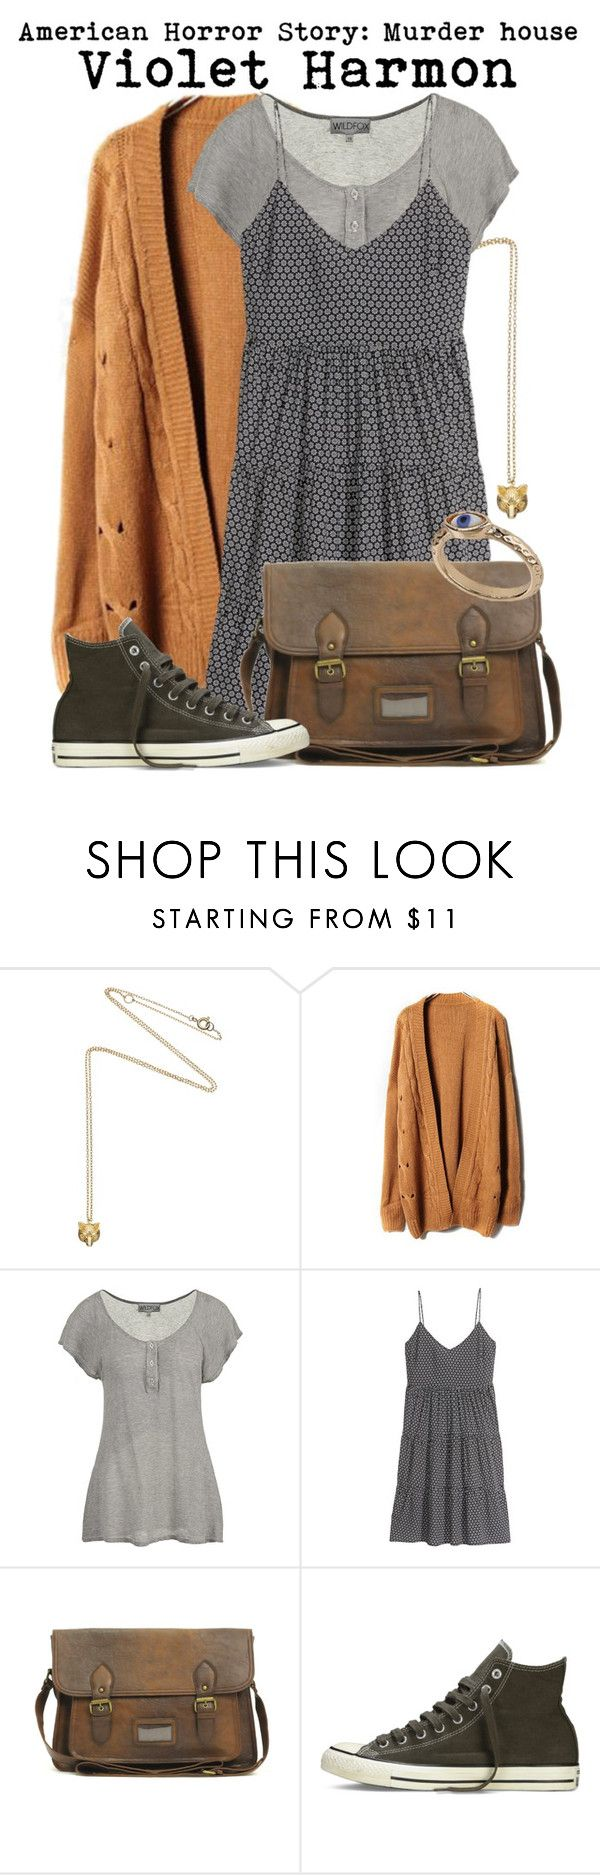 """American horror story- Violet Harmon"" by darcy-watson ❤ liked on Polyvore featuring Estella Bartlett, Wildfox, H&M, ASOS, Converse, Topshop, violet and ahs"